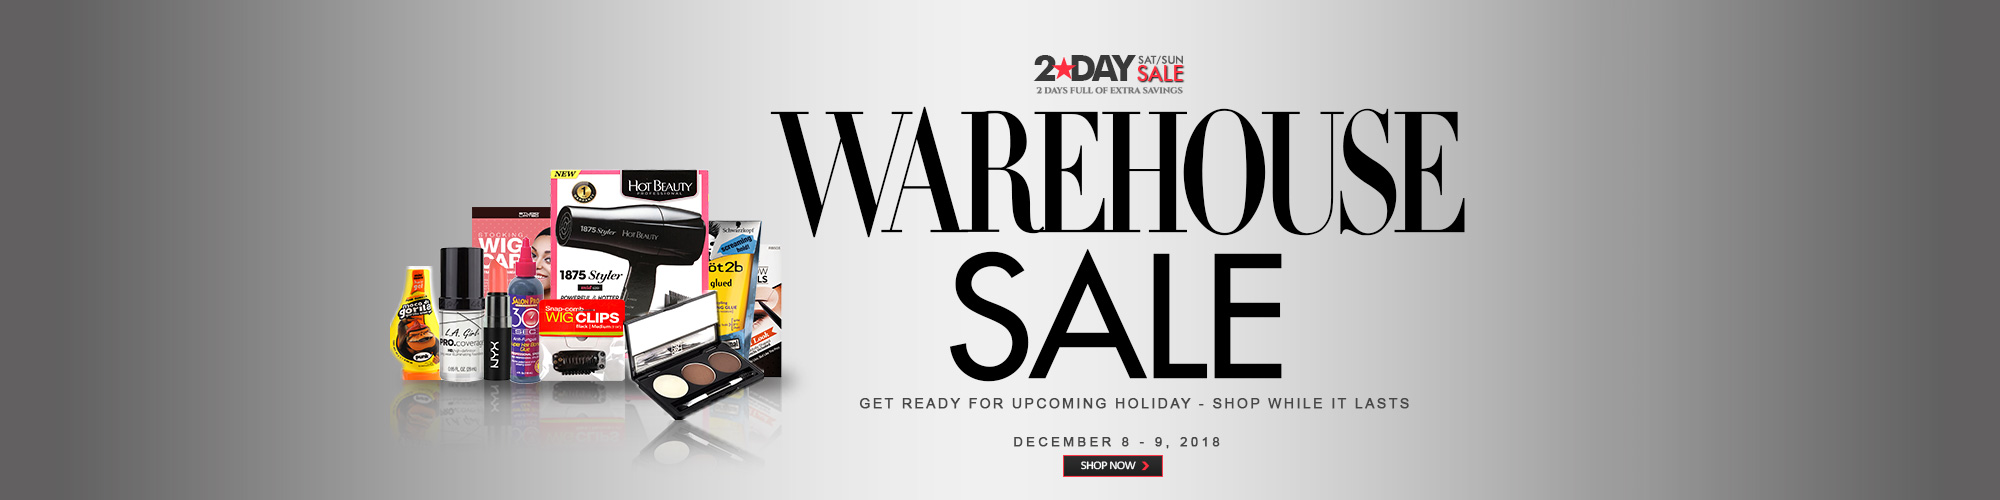 2-DAY WAREHOUSE SALE! - BEAUTY ESSENTIALS